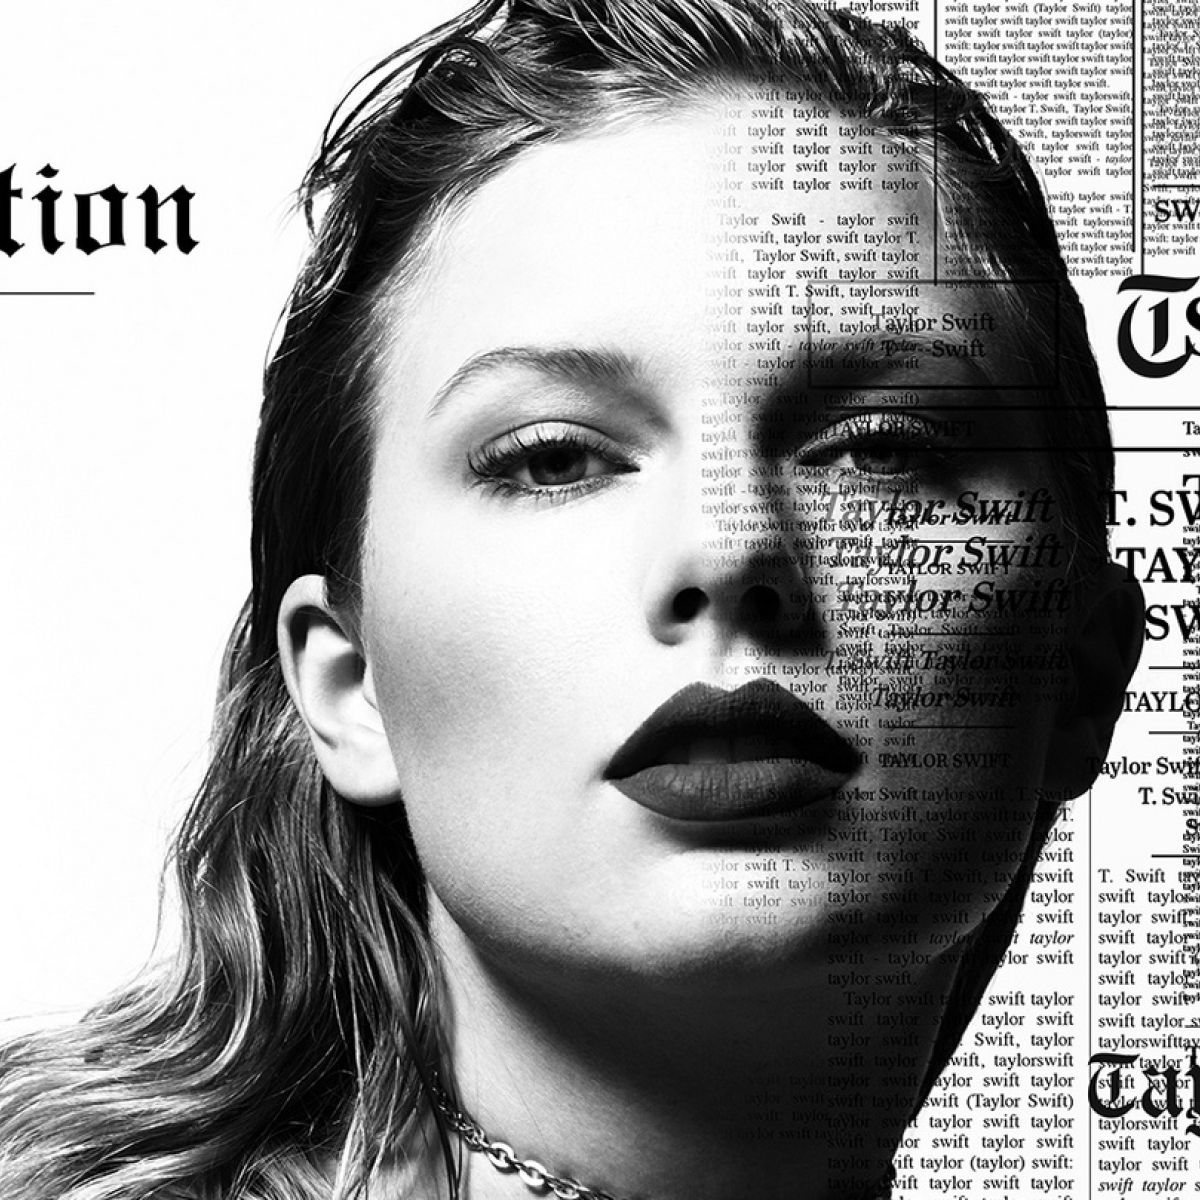 Taylor Swift Reputation Clever Songwriting Beauty In Tiny Details